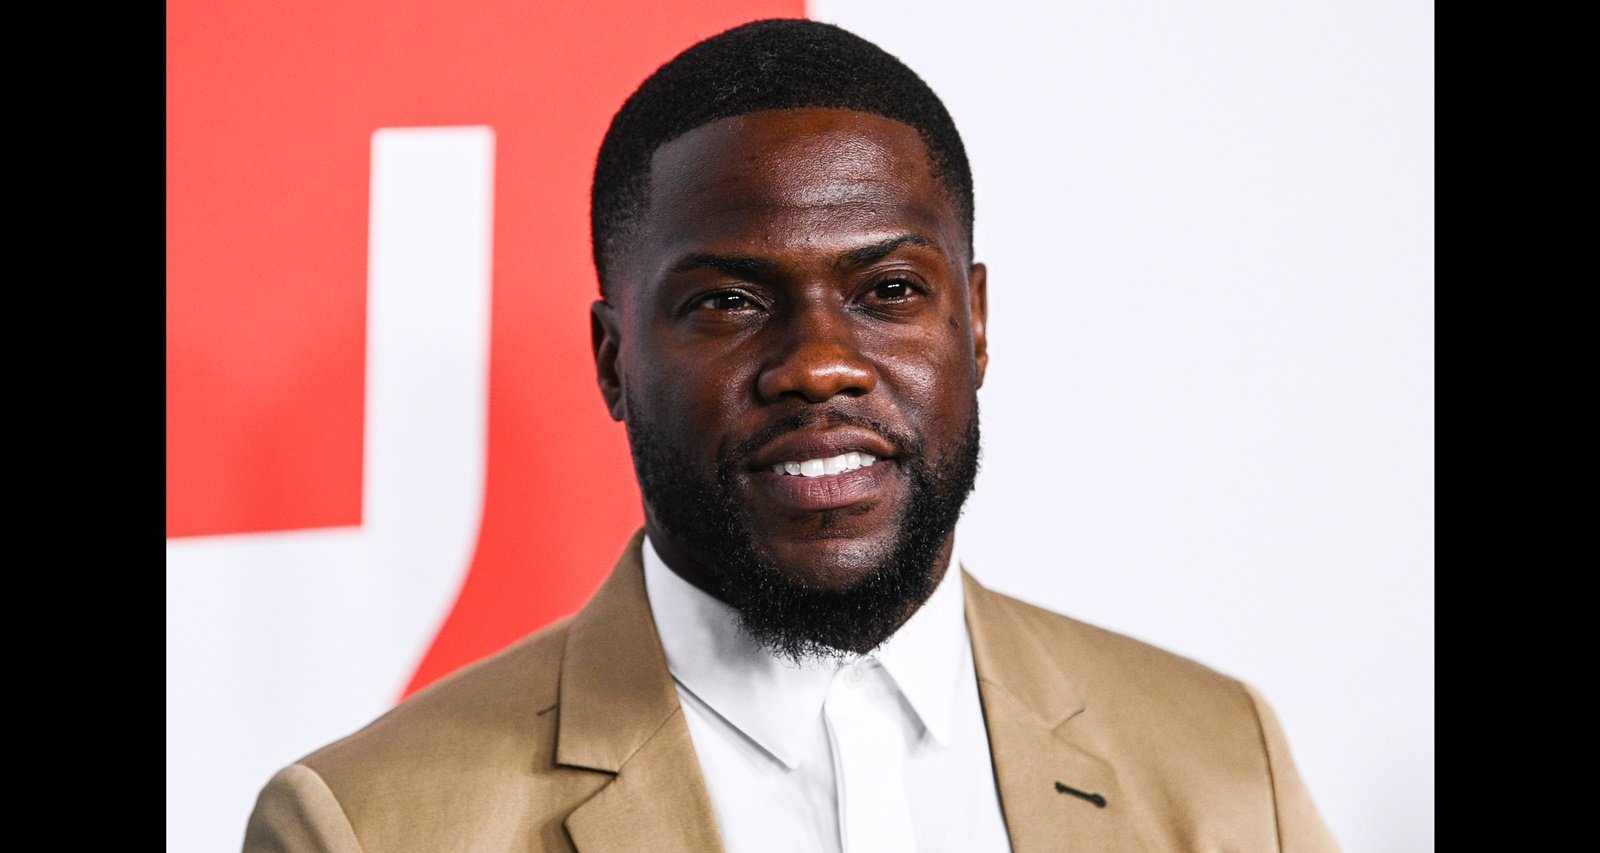 Kevin Hart Net Worth 2019: How Did He Become One of the Highest-Earning Comedians?